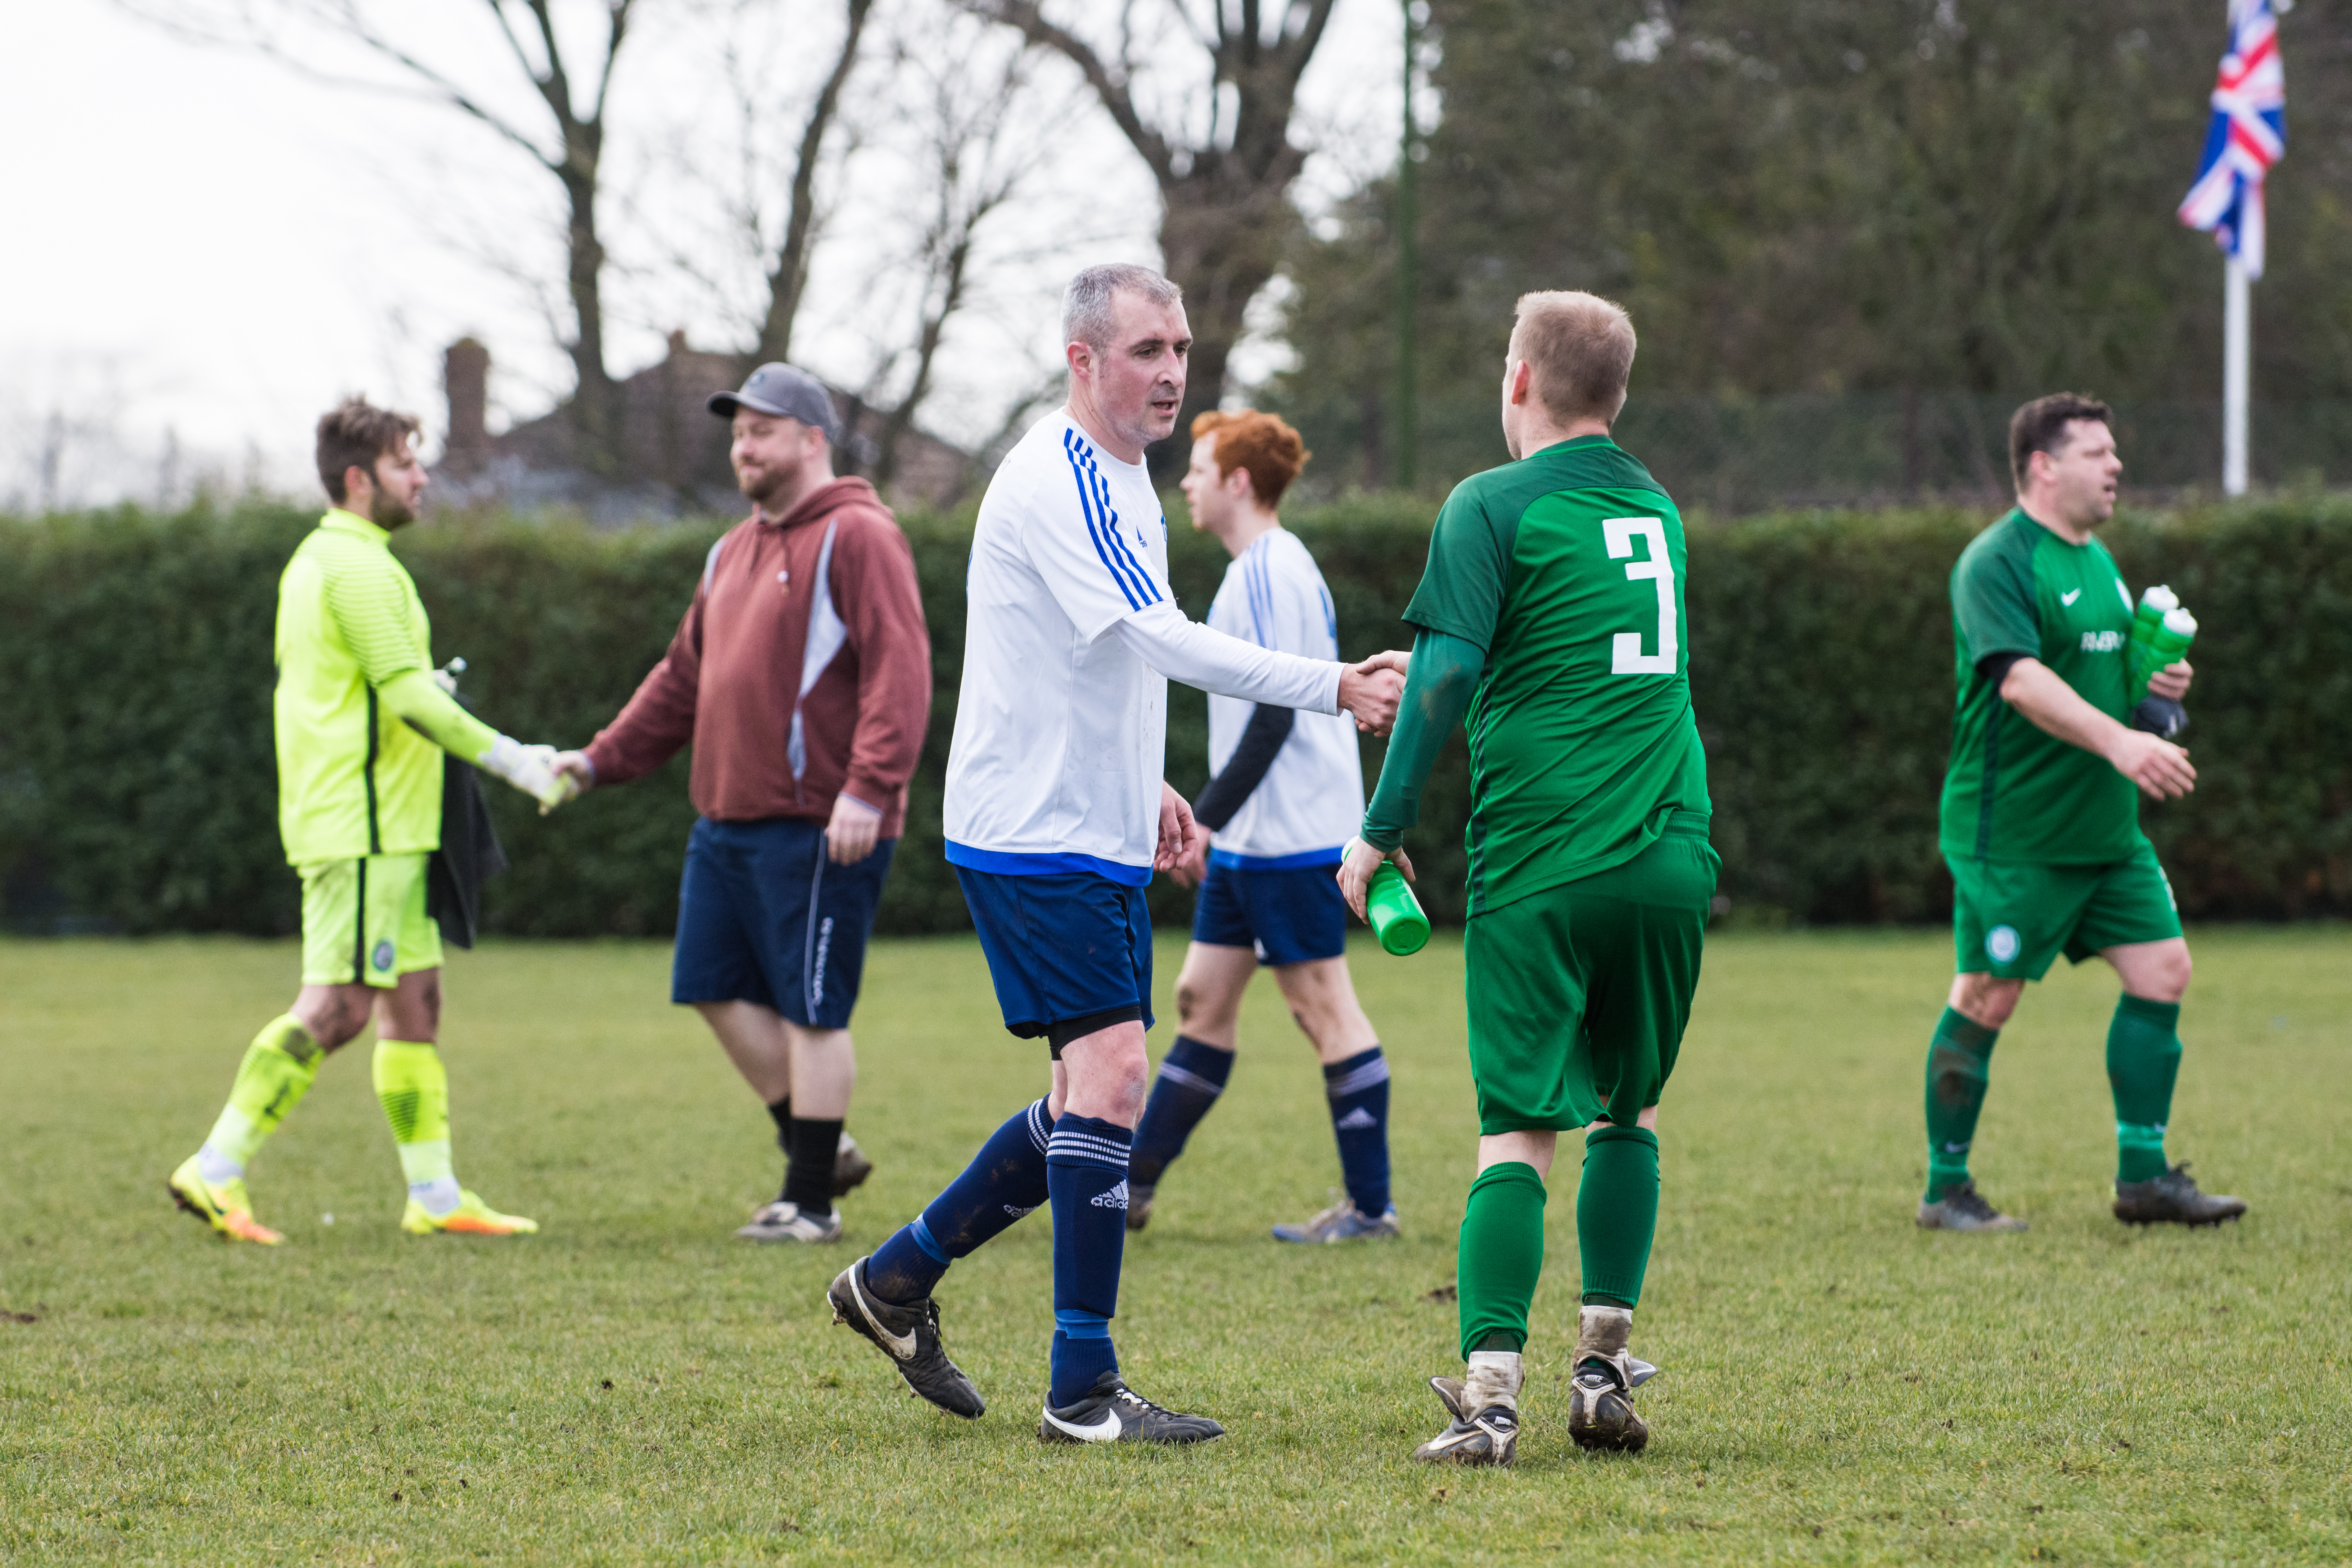 DAVID_JEFFERY FC Sporting vs Sompting 2nds 10.03.18 79